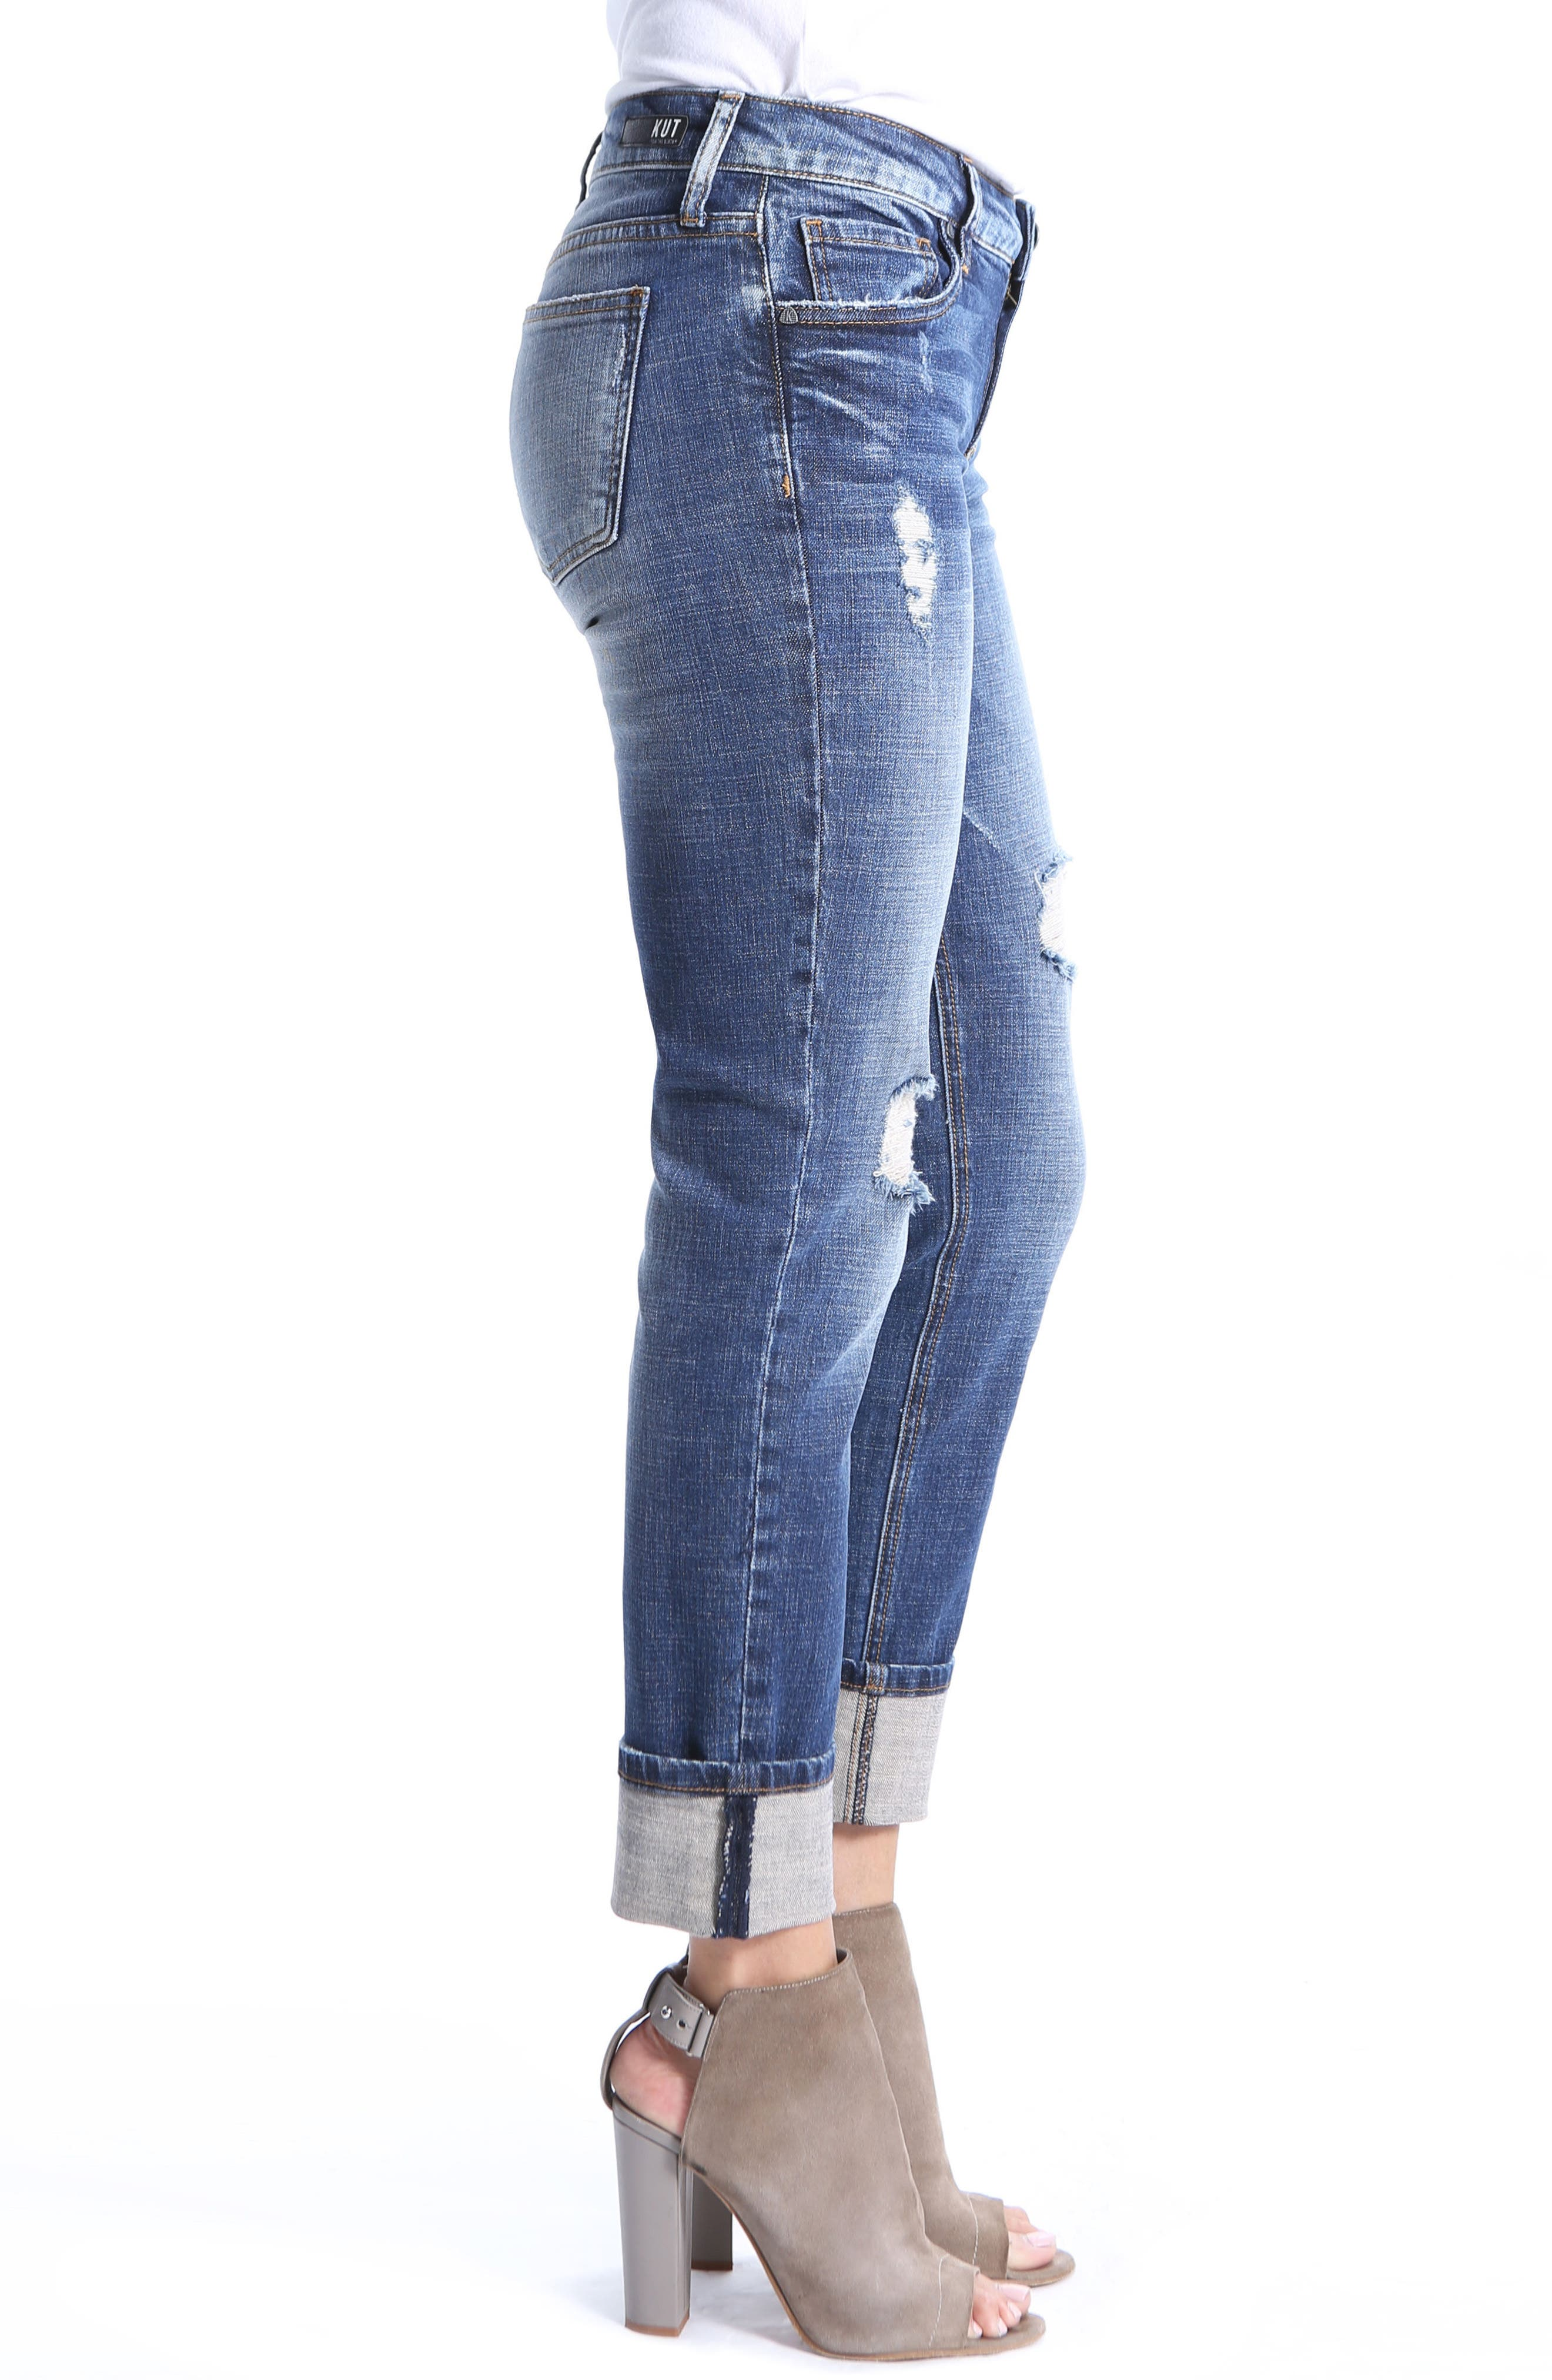 Catherine Ripped Boyfriend Jeans,                             Alternate thumbnail 3, color,                             400